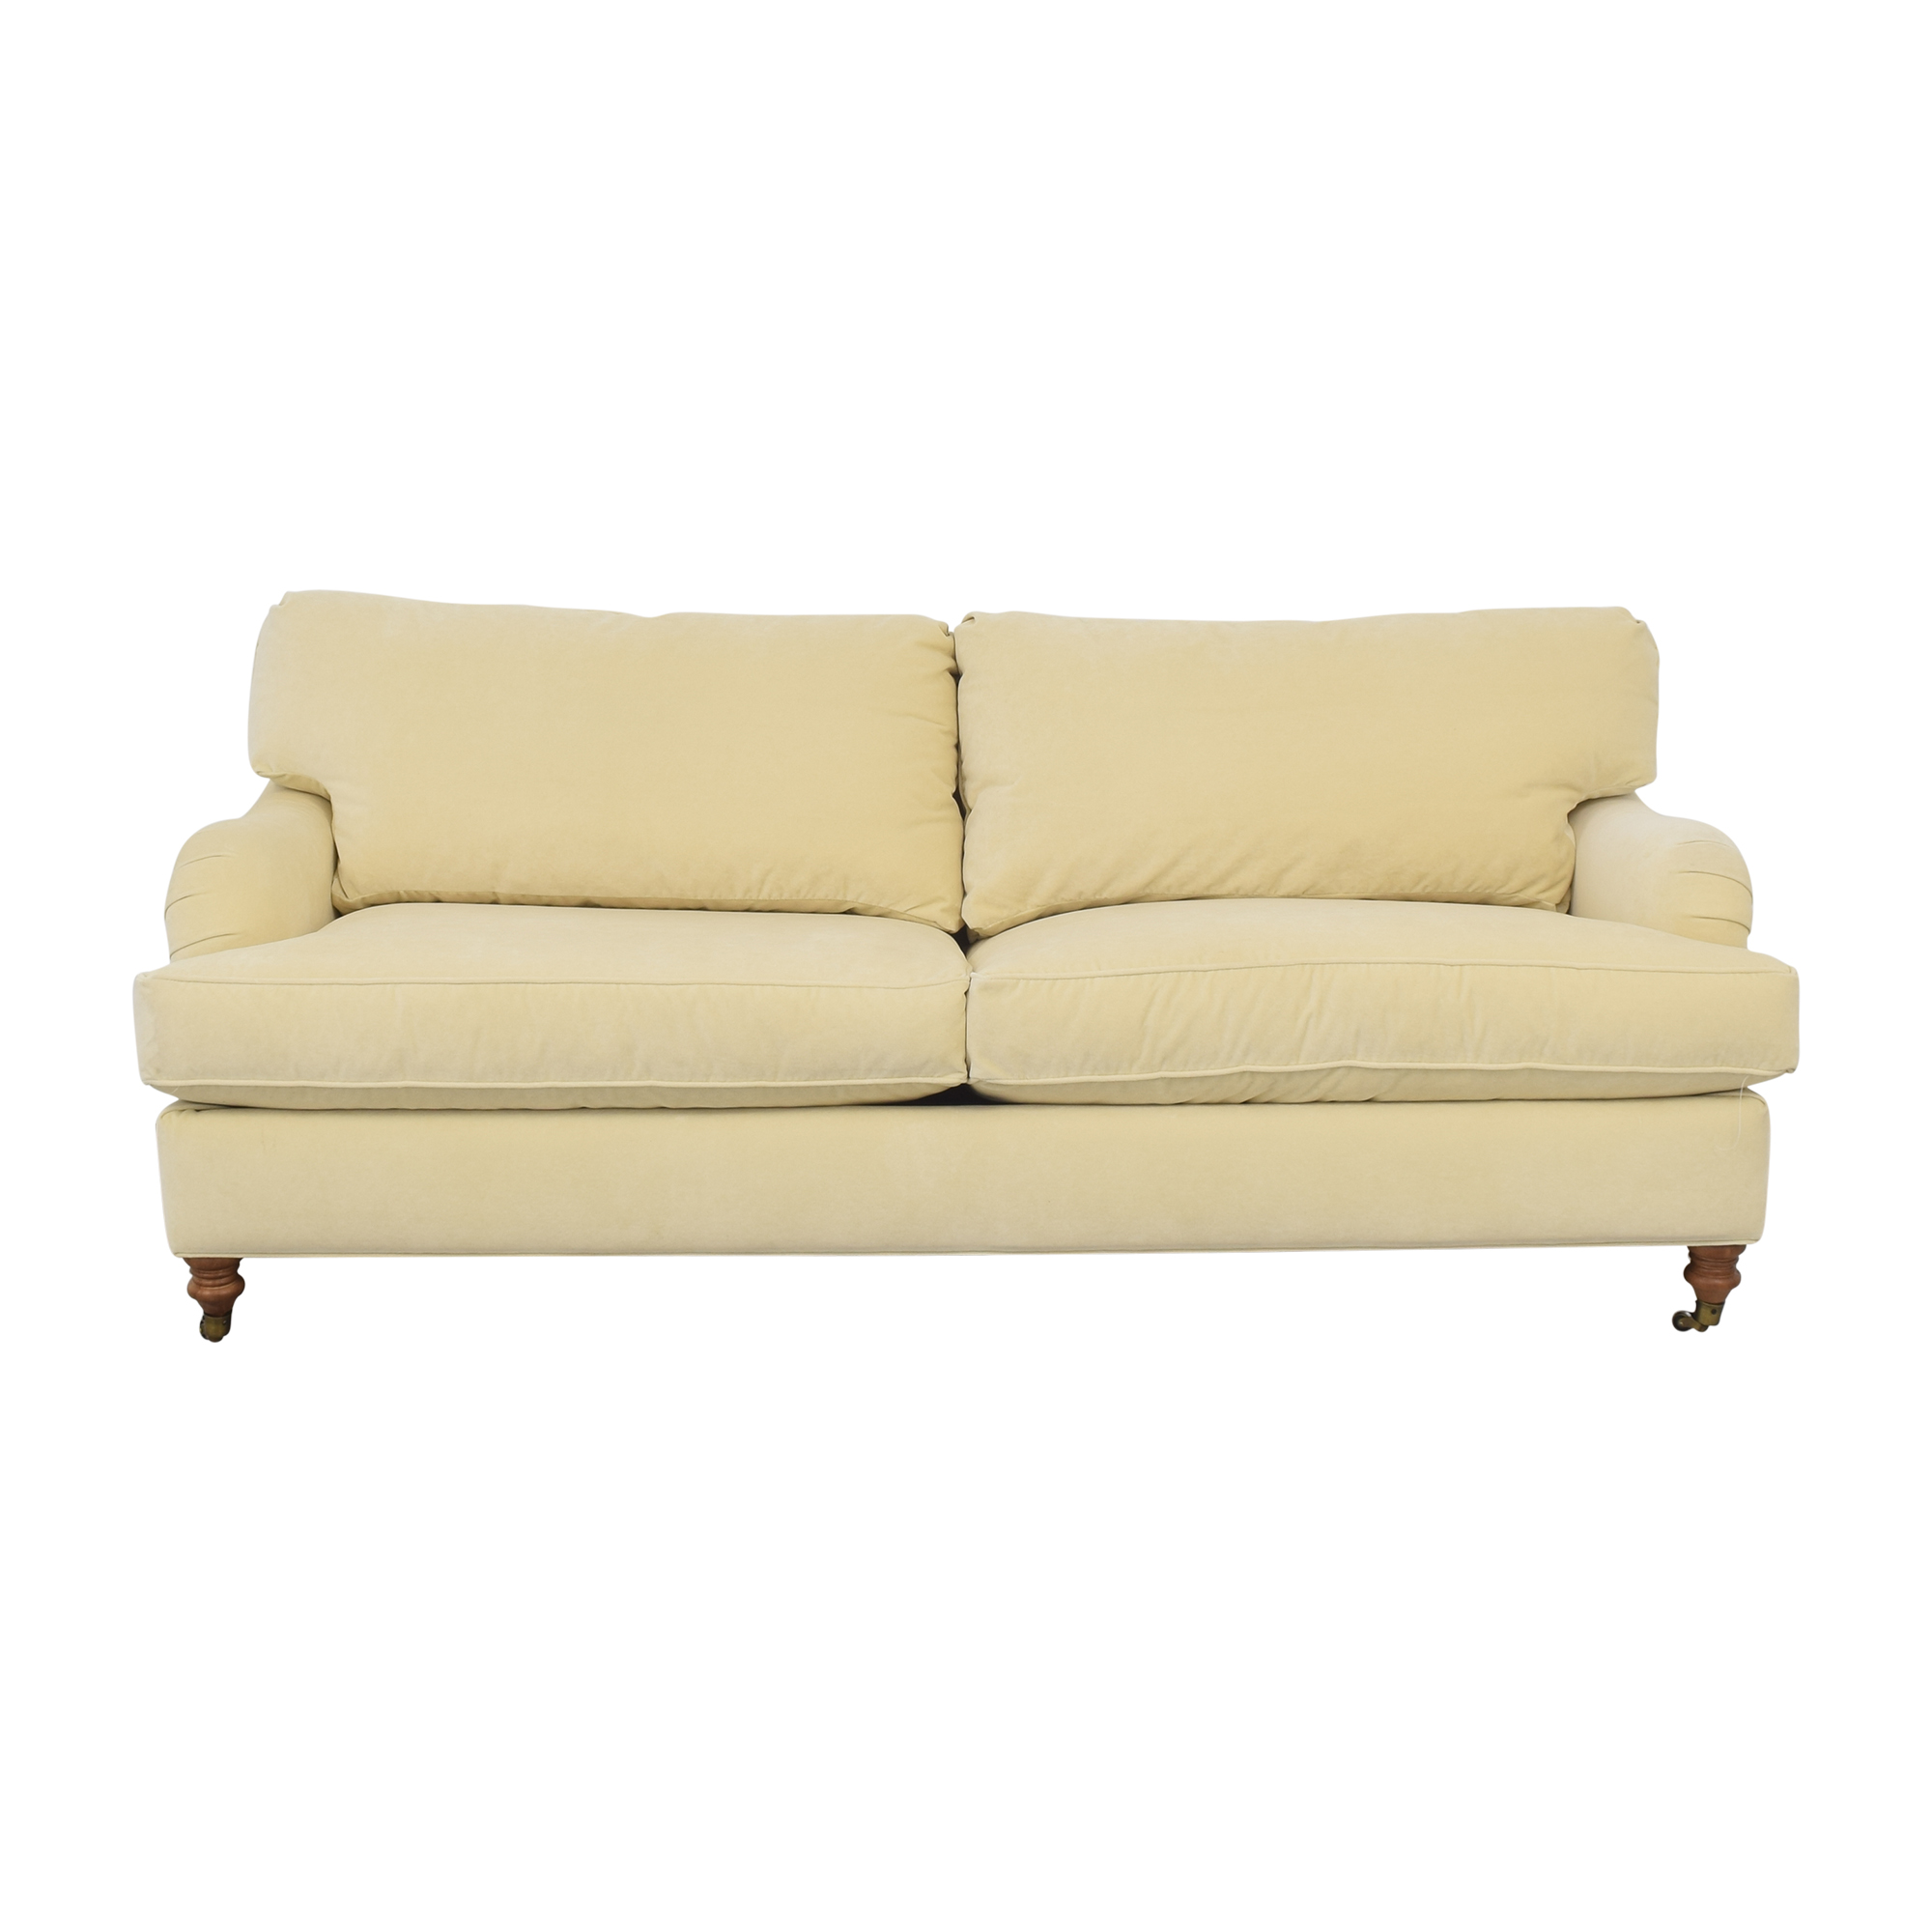 shop Robin Bruce Brooke Queen Sleeper Sofa Robin Bruce Sofas